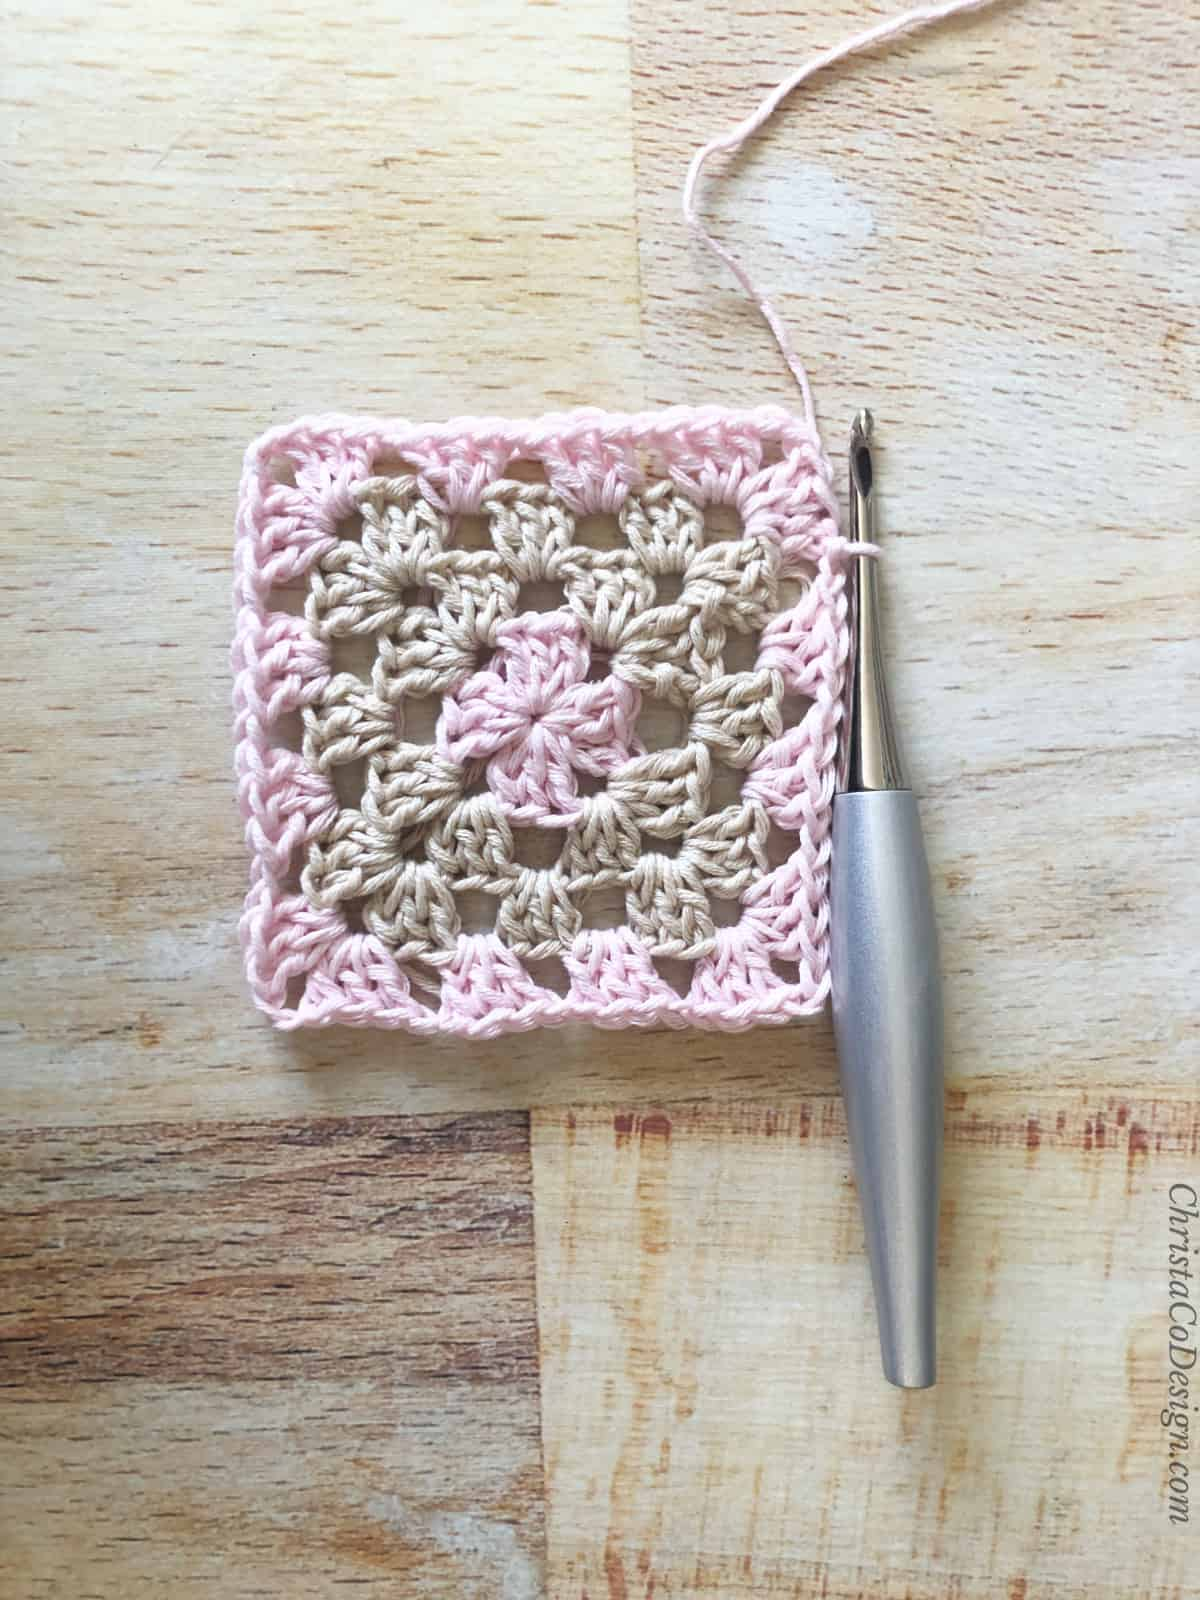 Four rounds of granny square in pink and beige.